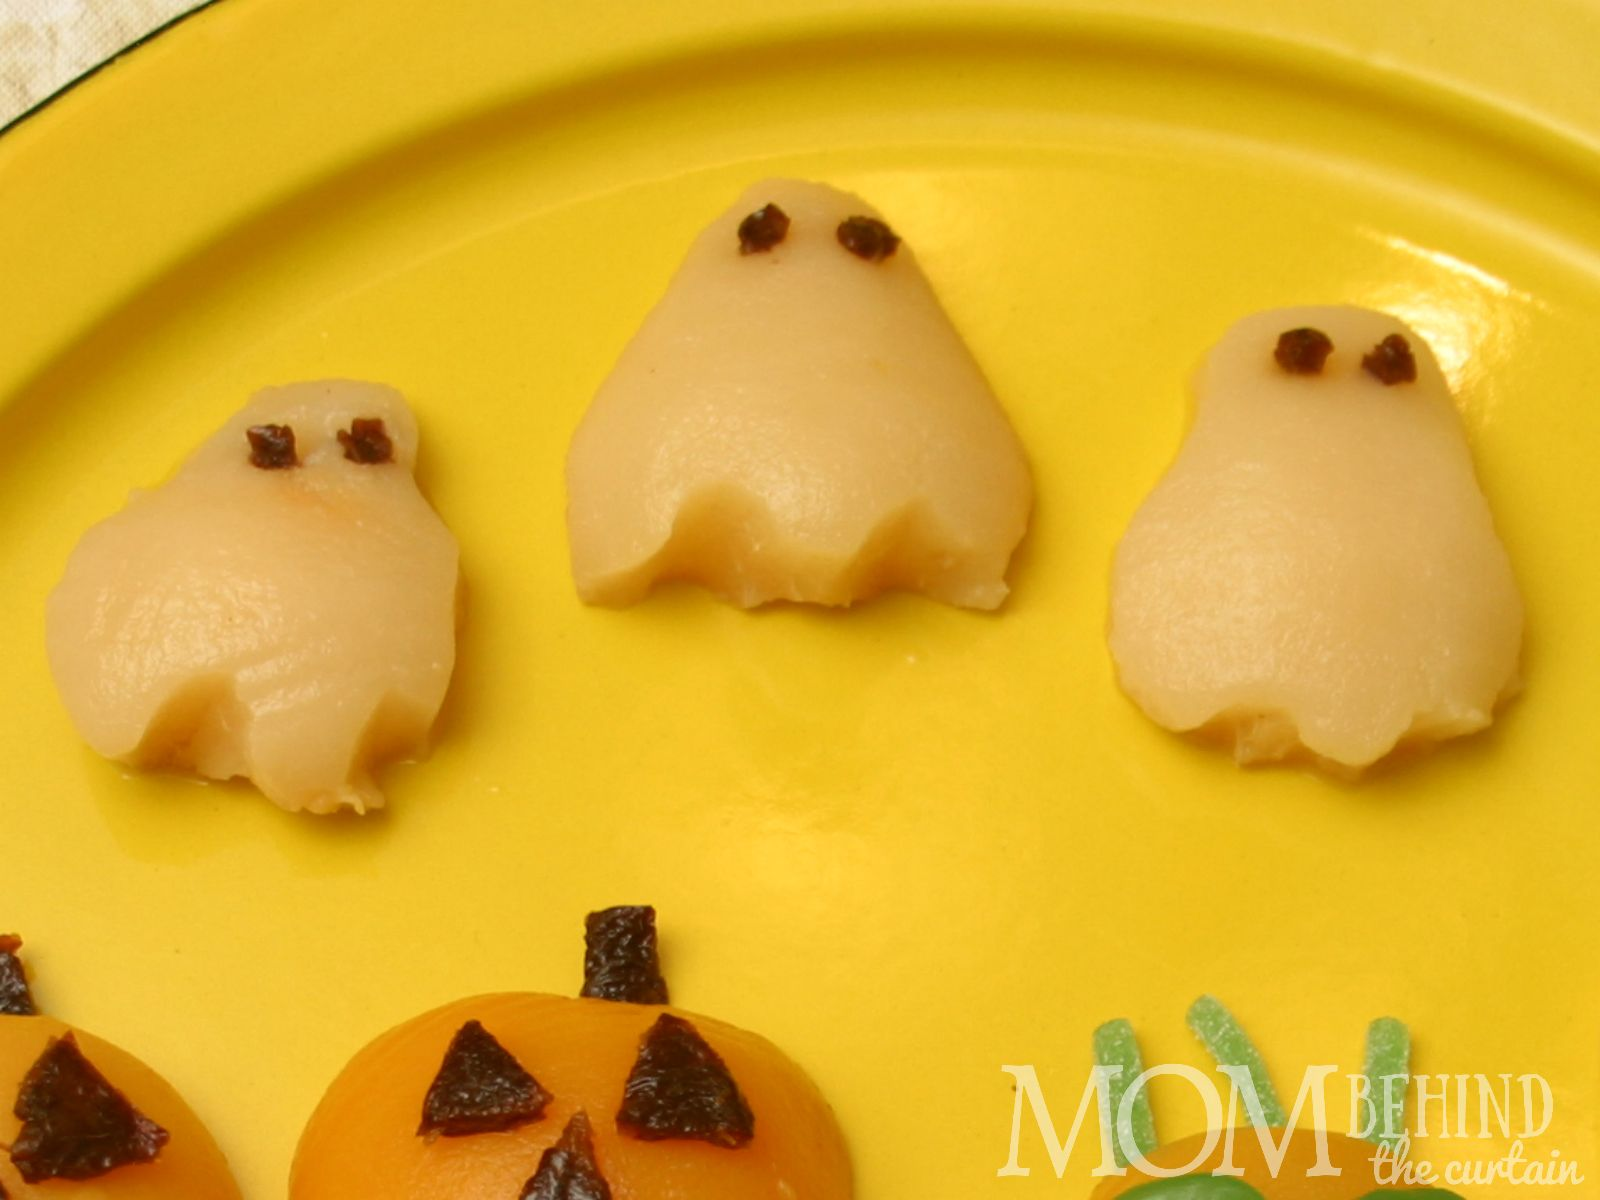 My kids loved these adorable fruit ghosts! It was a great healthy snack to put in their tummies before they filled up on Halloween candy. They're easy - once I figured out the trick to get those little eyes to stay put! They'd also be great at a class Halloween party at schools that don't allow any food with cane sugar (sucrose).